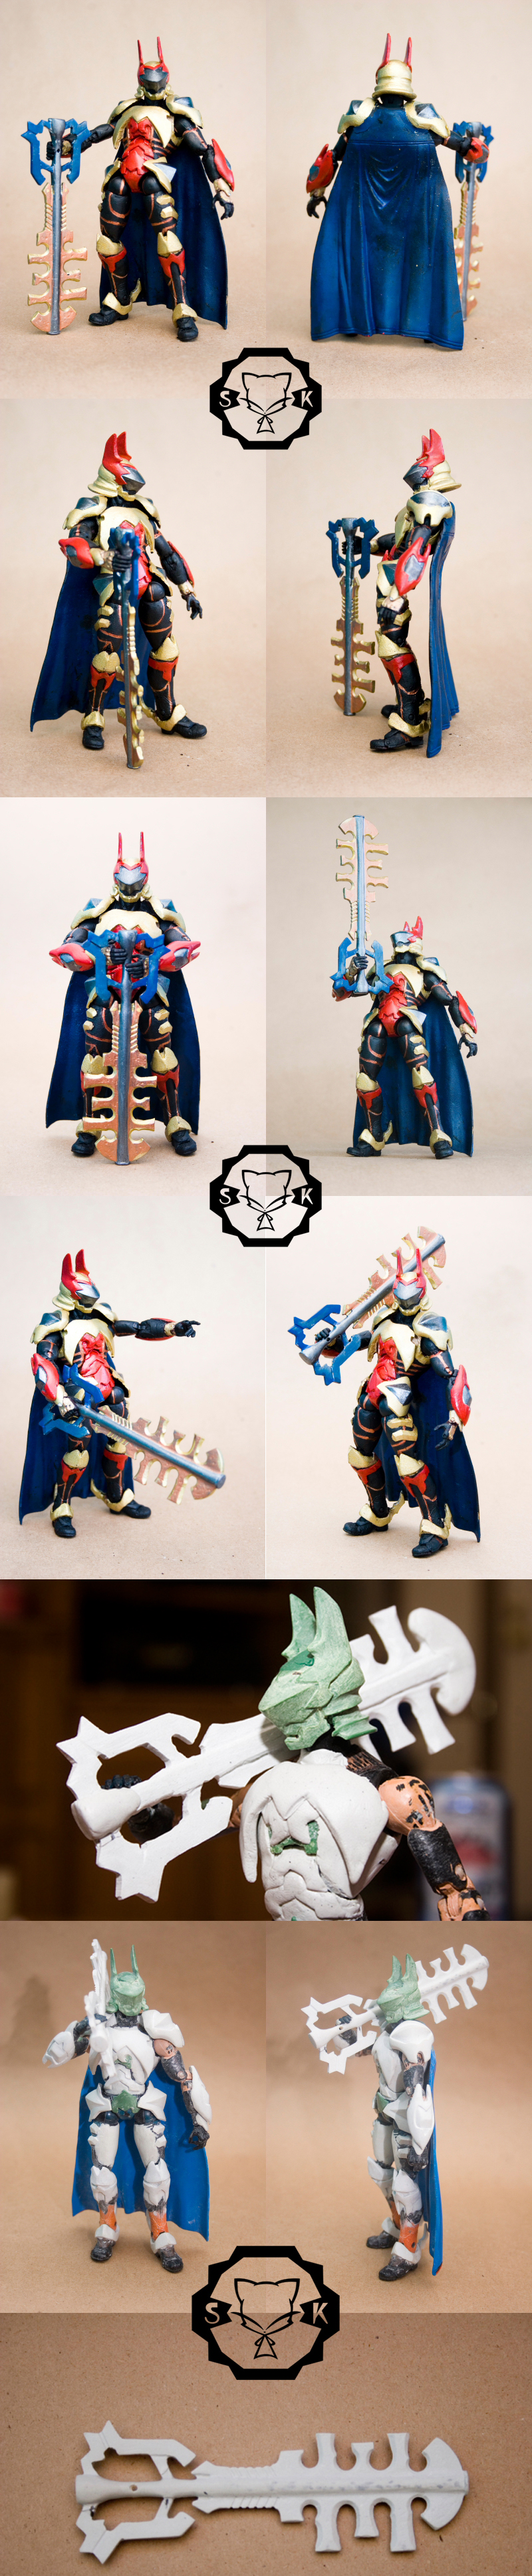 KH Terra custom poseable fig by SomaKun